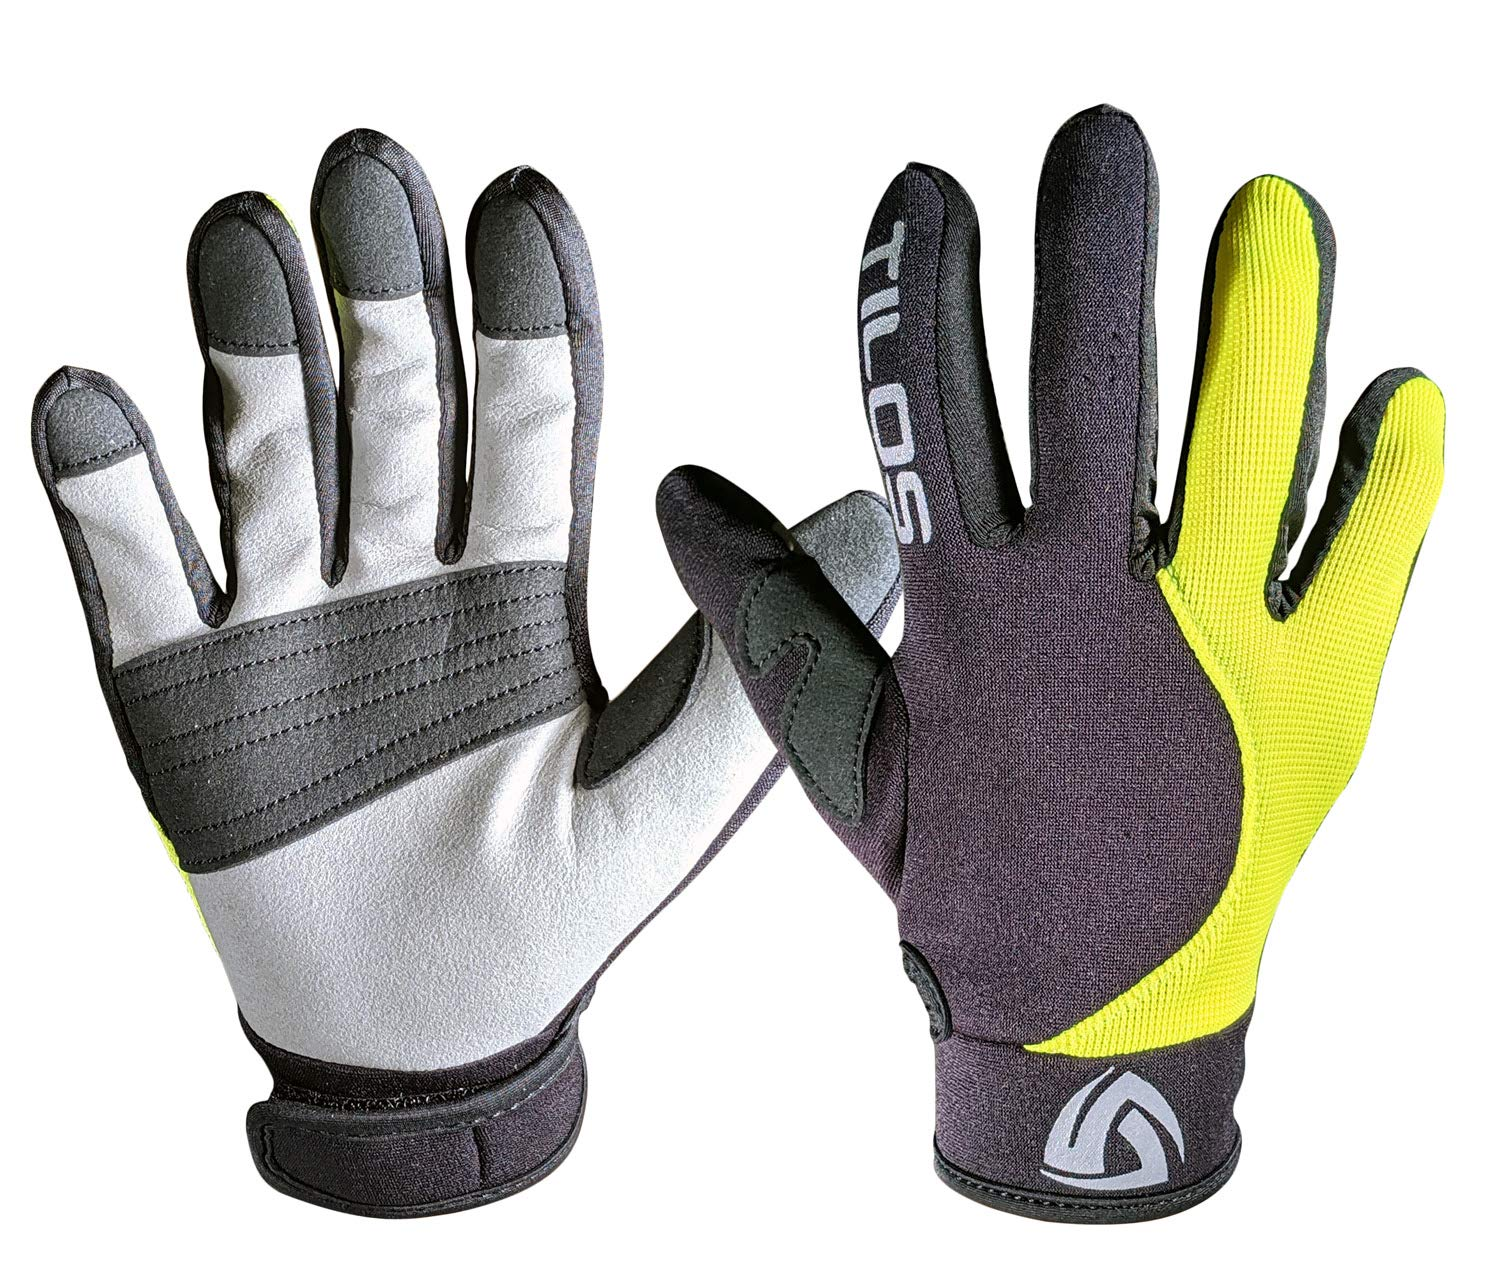 Tilos 1.5mm Tropical Dive Gloves Stretchy Mesh with Amara Leather for Snorkeling, Kayaking, Water Jet Skiing, Sailing, Scuba Diving, Rafting (Yellow, L) by Tilos